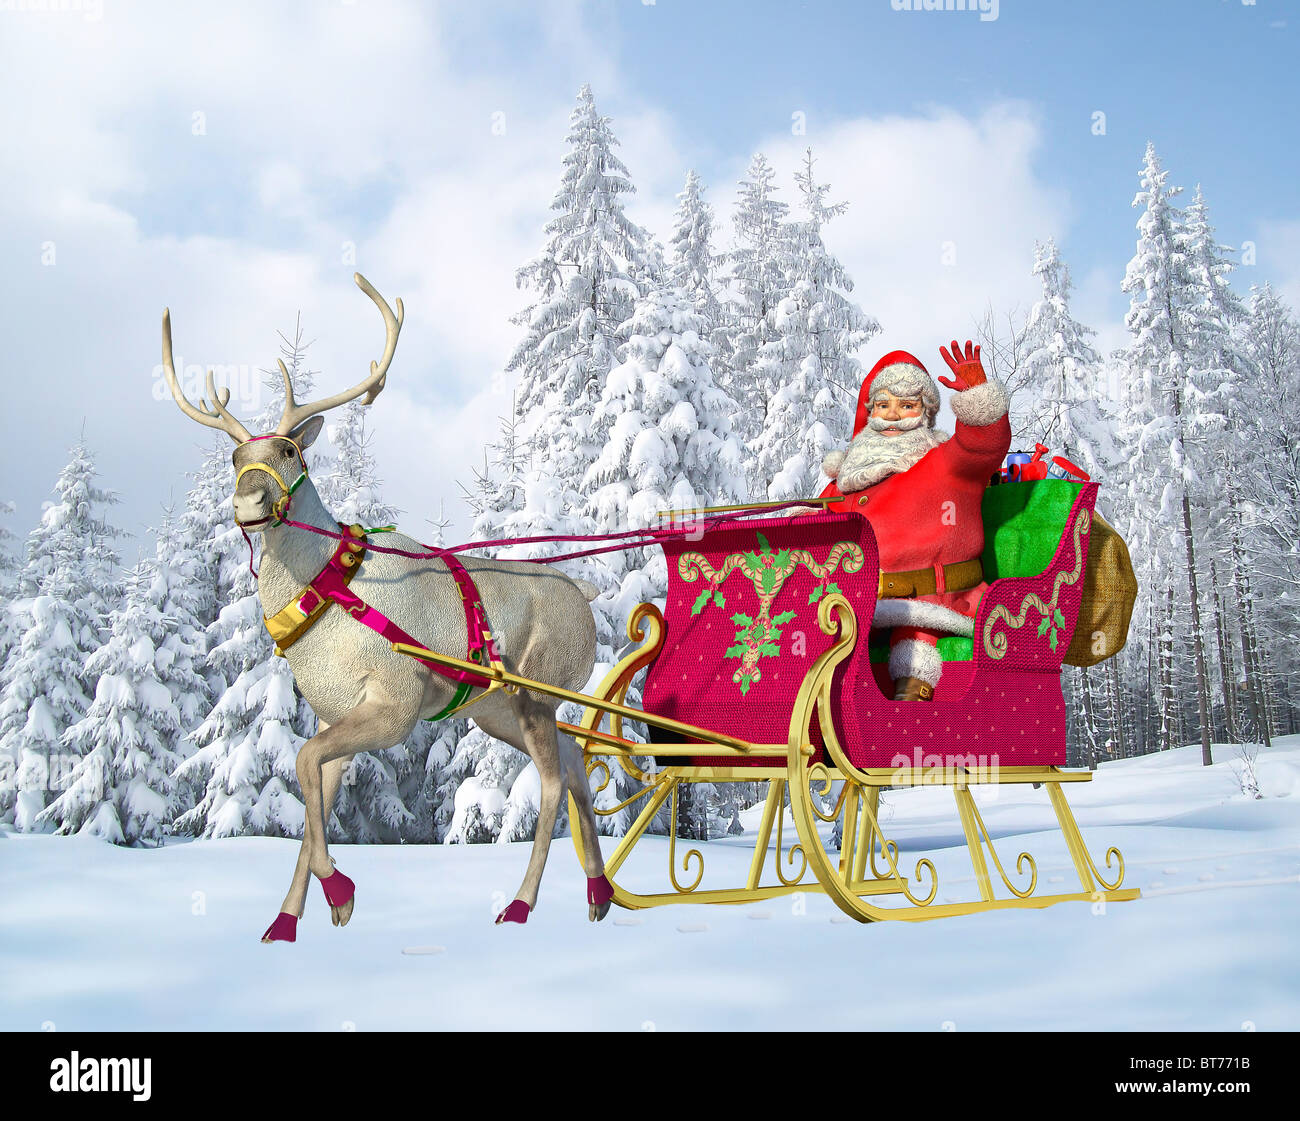 santa claus driving a sleigh with reindeer on a snowy ground with a stock photo 32121303 alamy - Santa With Reindeer Pictures